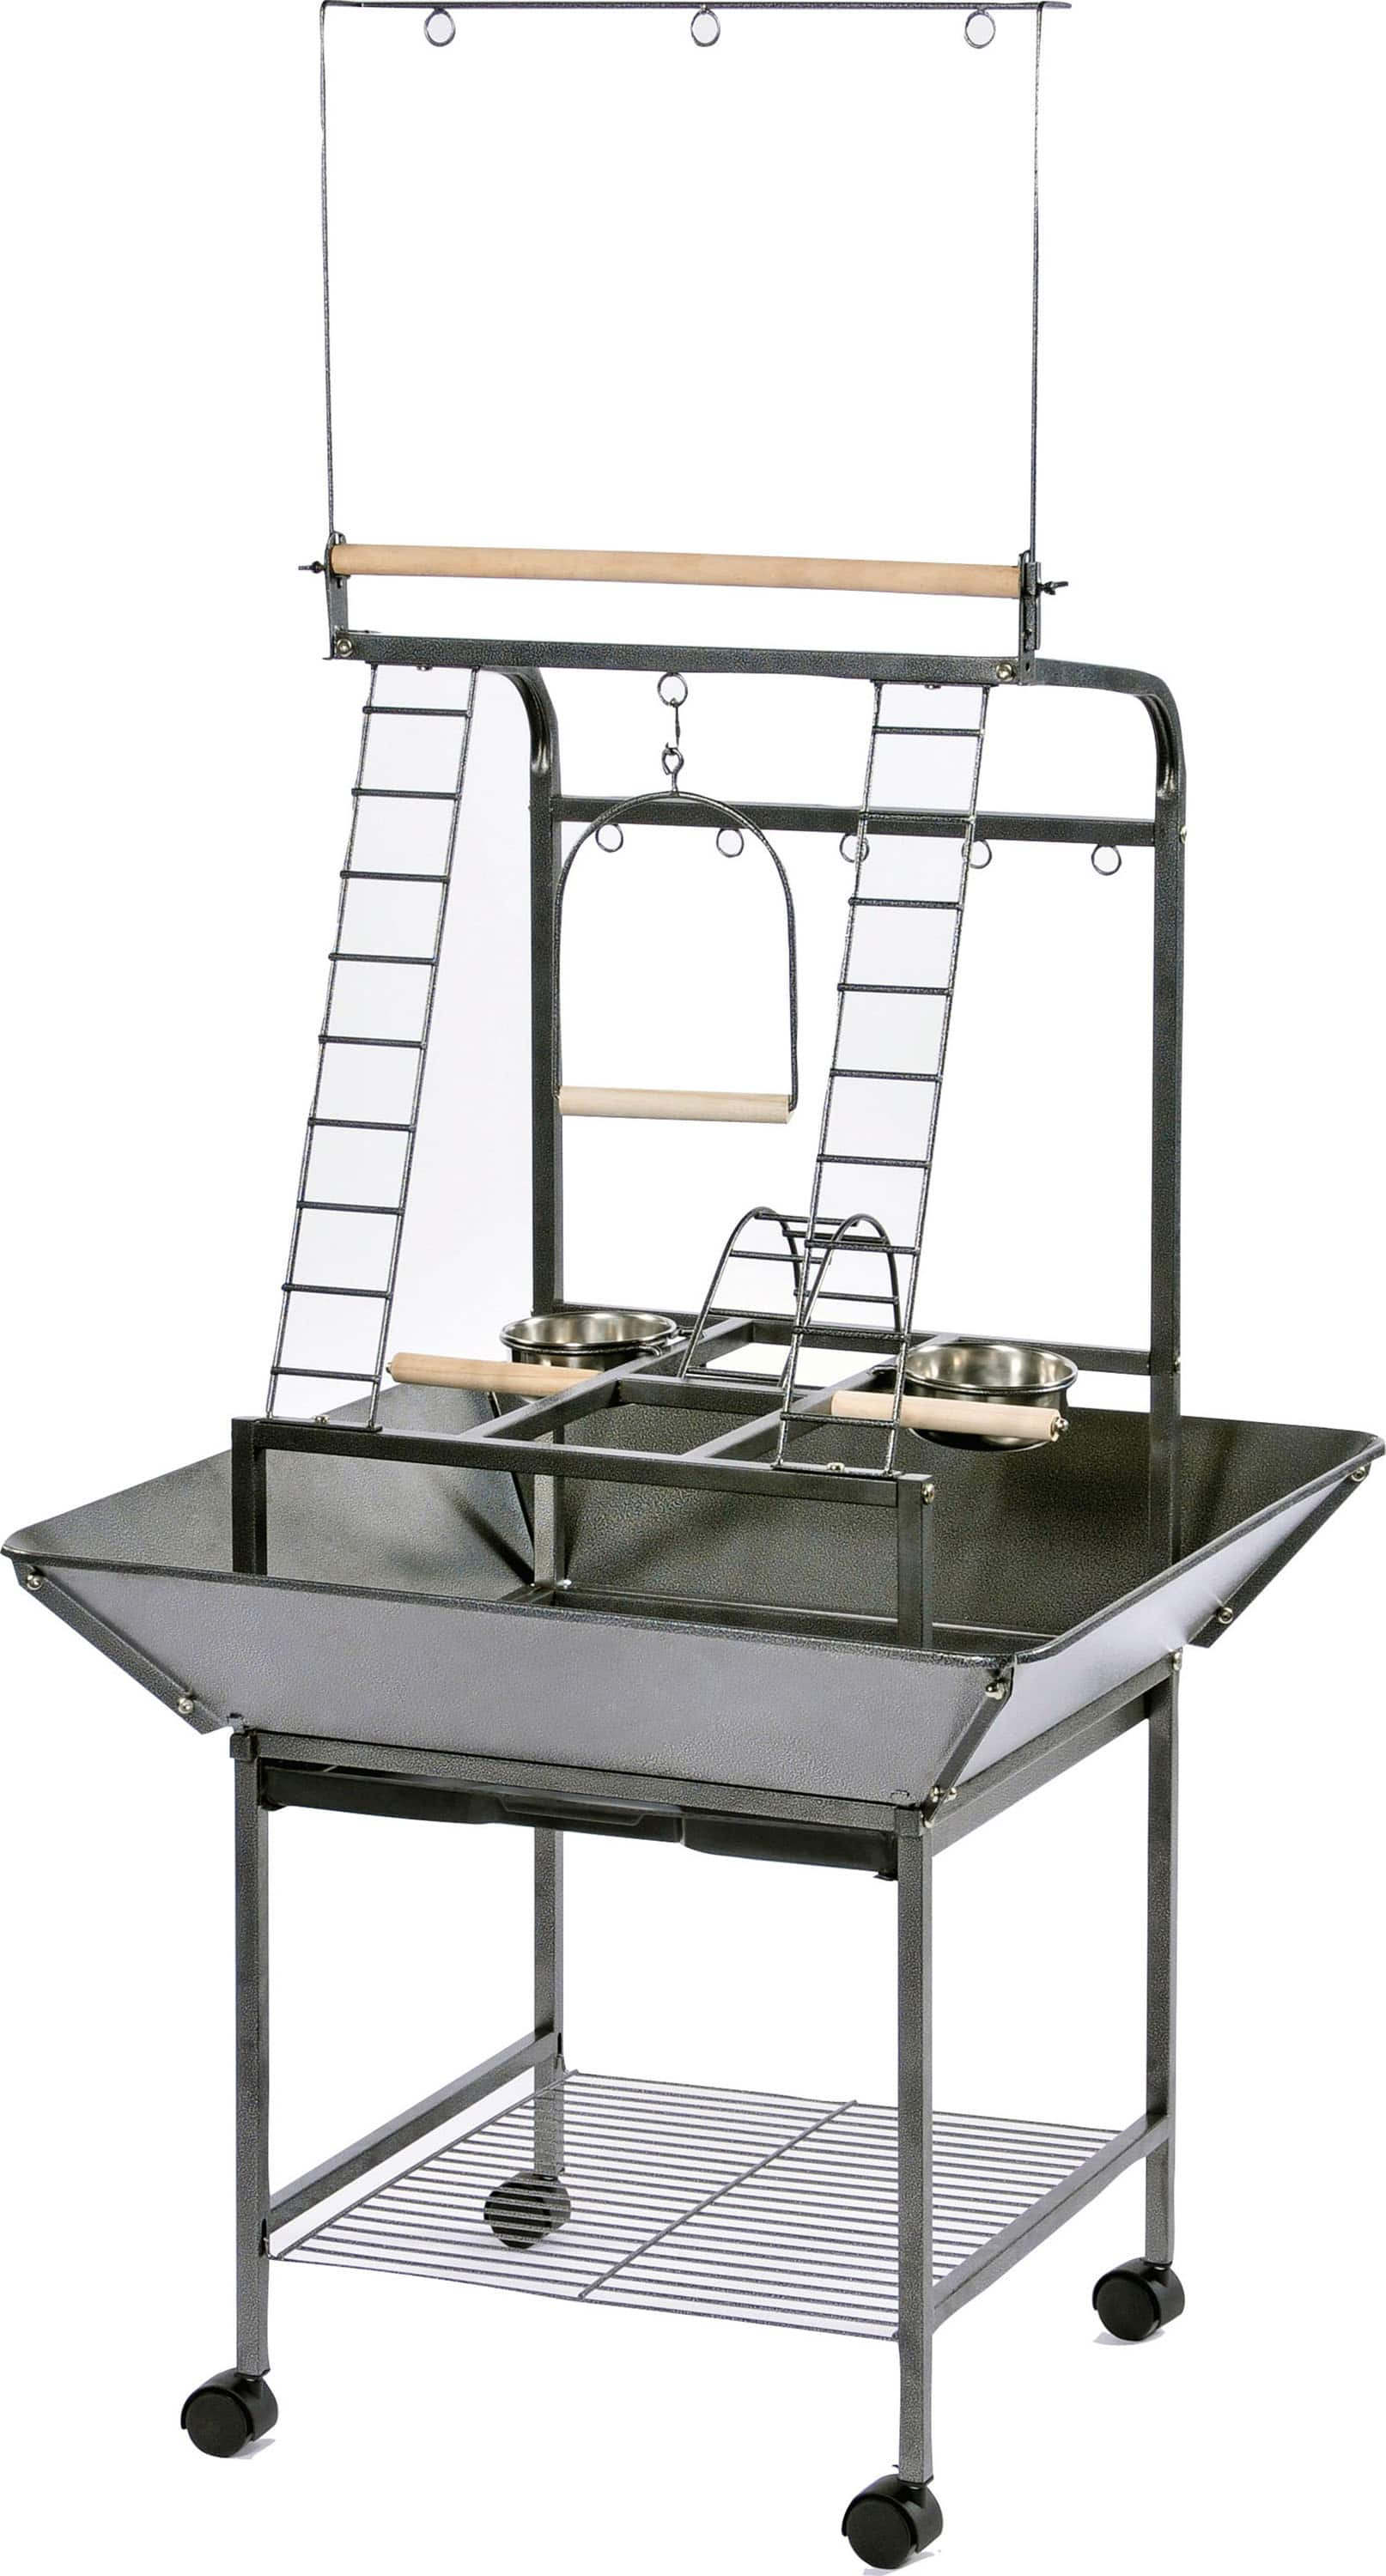 Prevue Pet Products Small Parrot Playstand (black) $92 + Free shipping $93